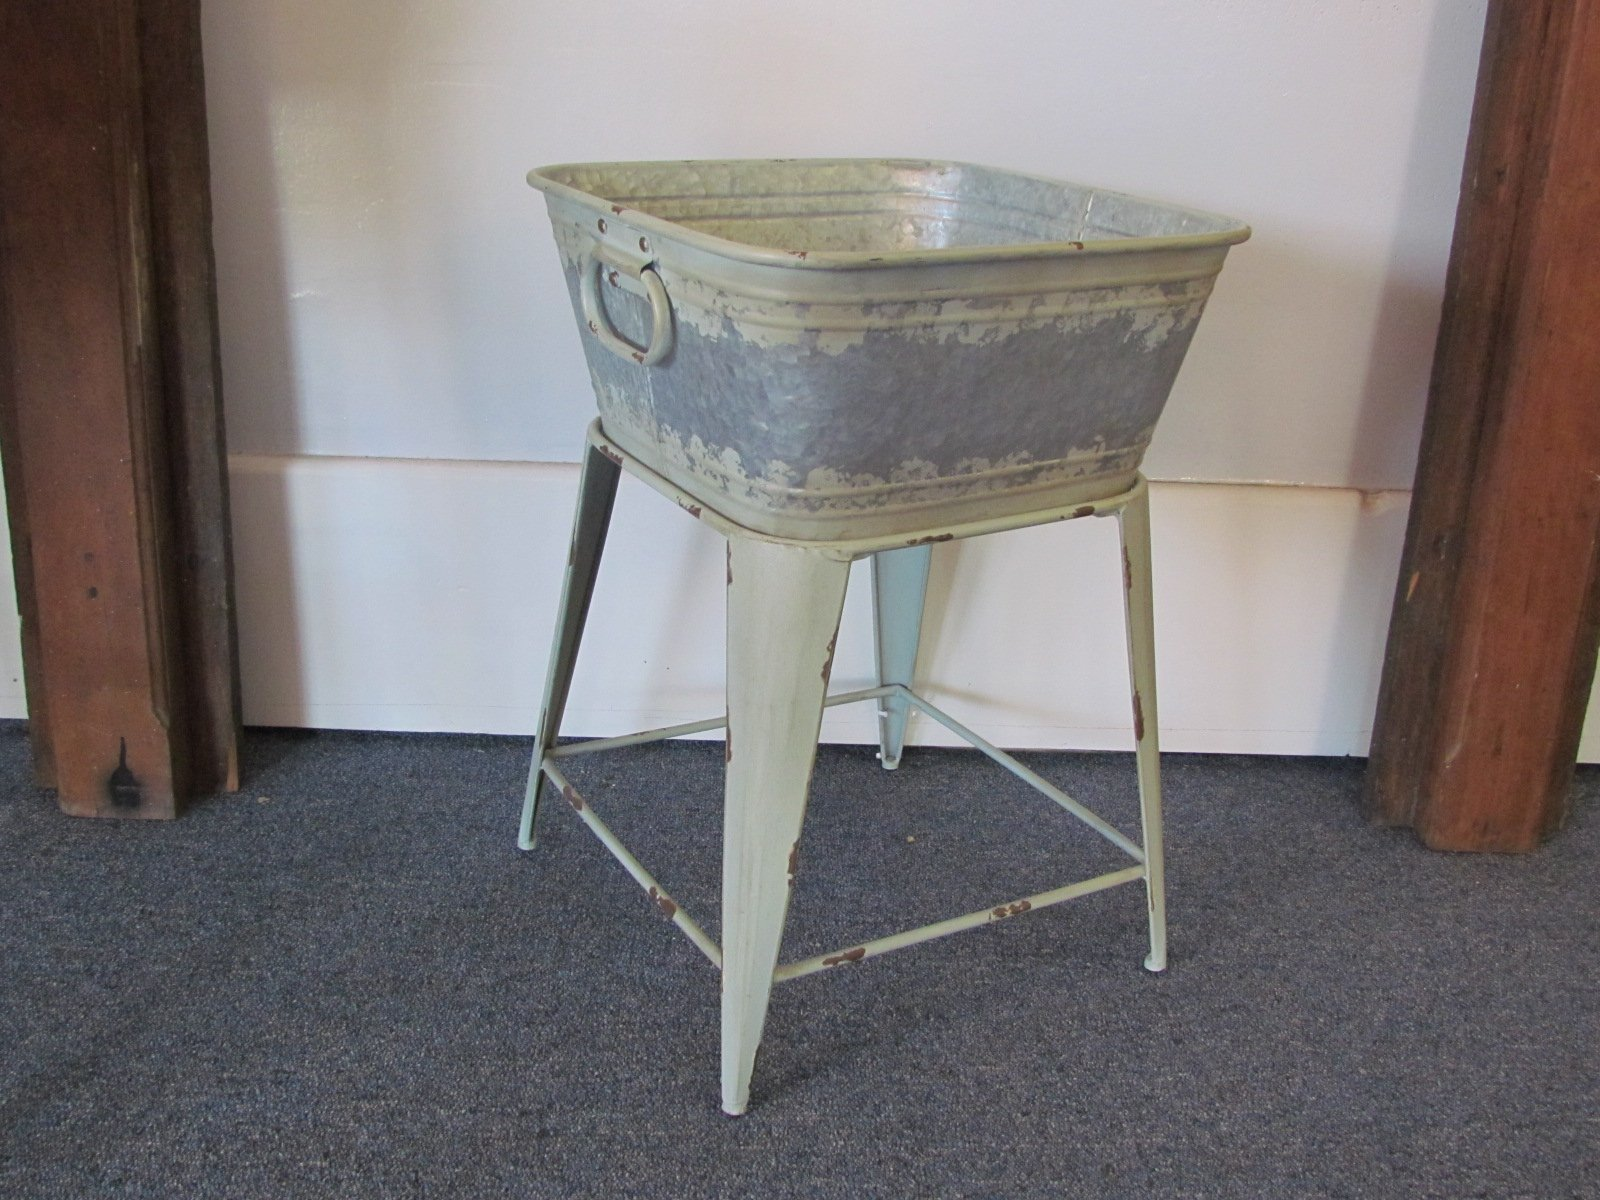 Small Tub on Stand $5 / Day